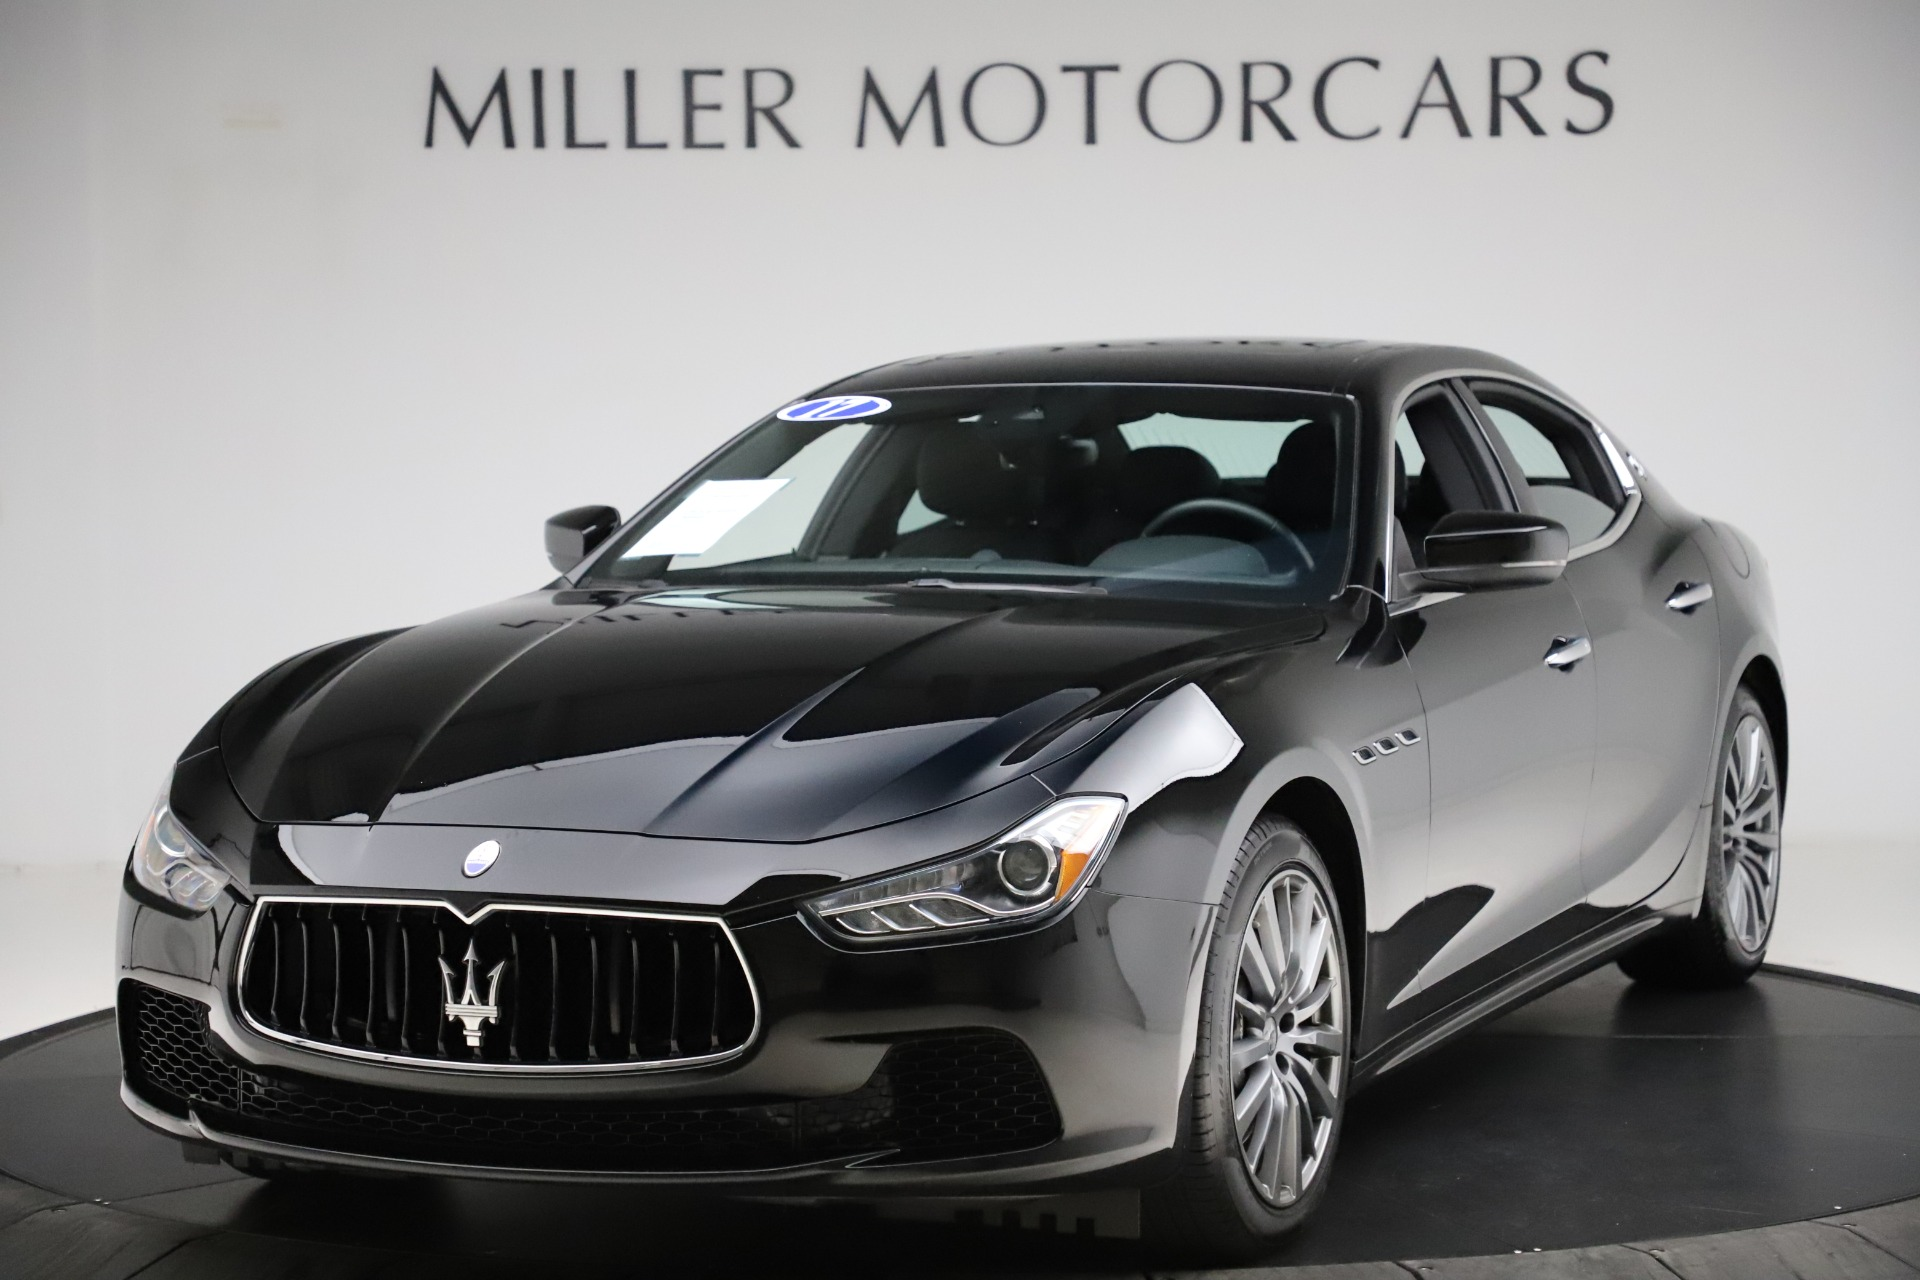 Used 2017 Maserati Ghibli S Q4 for sale $41,900 at Aston Martin of Greenwich in Greenwich CT 06830 1